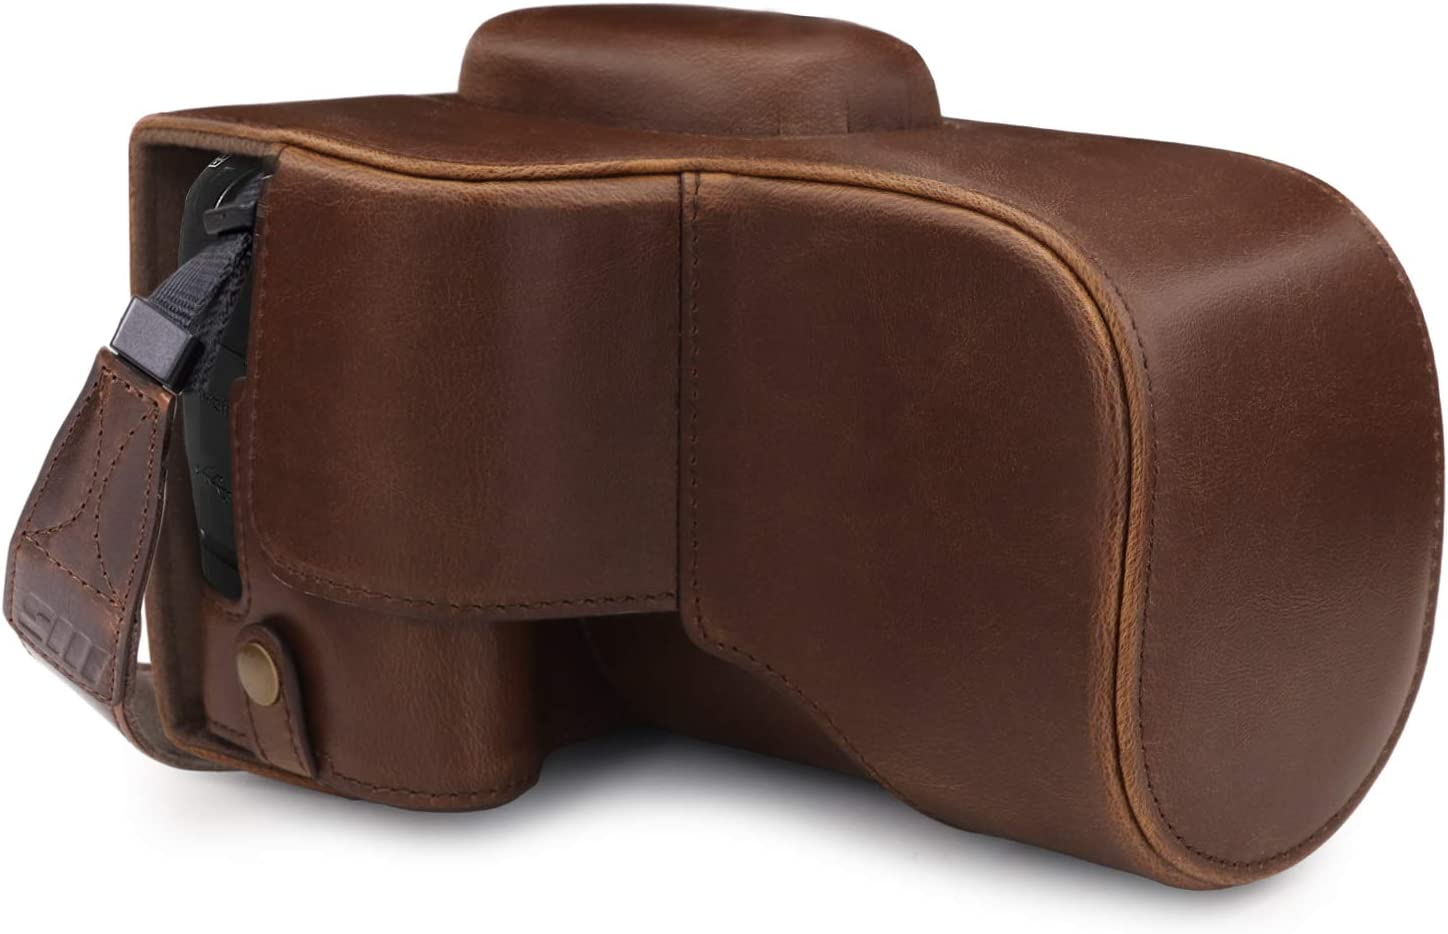 MegaGear Ever Ready Leather Camera Case compatible with Canon EOS 4000D